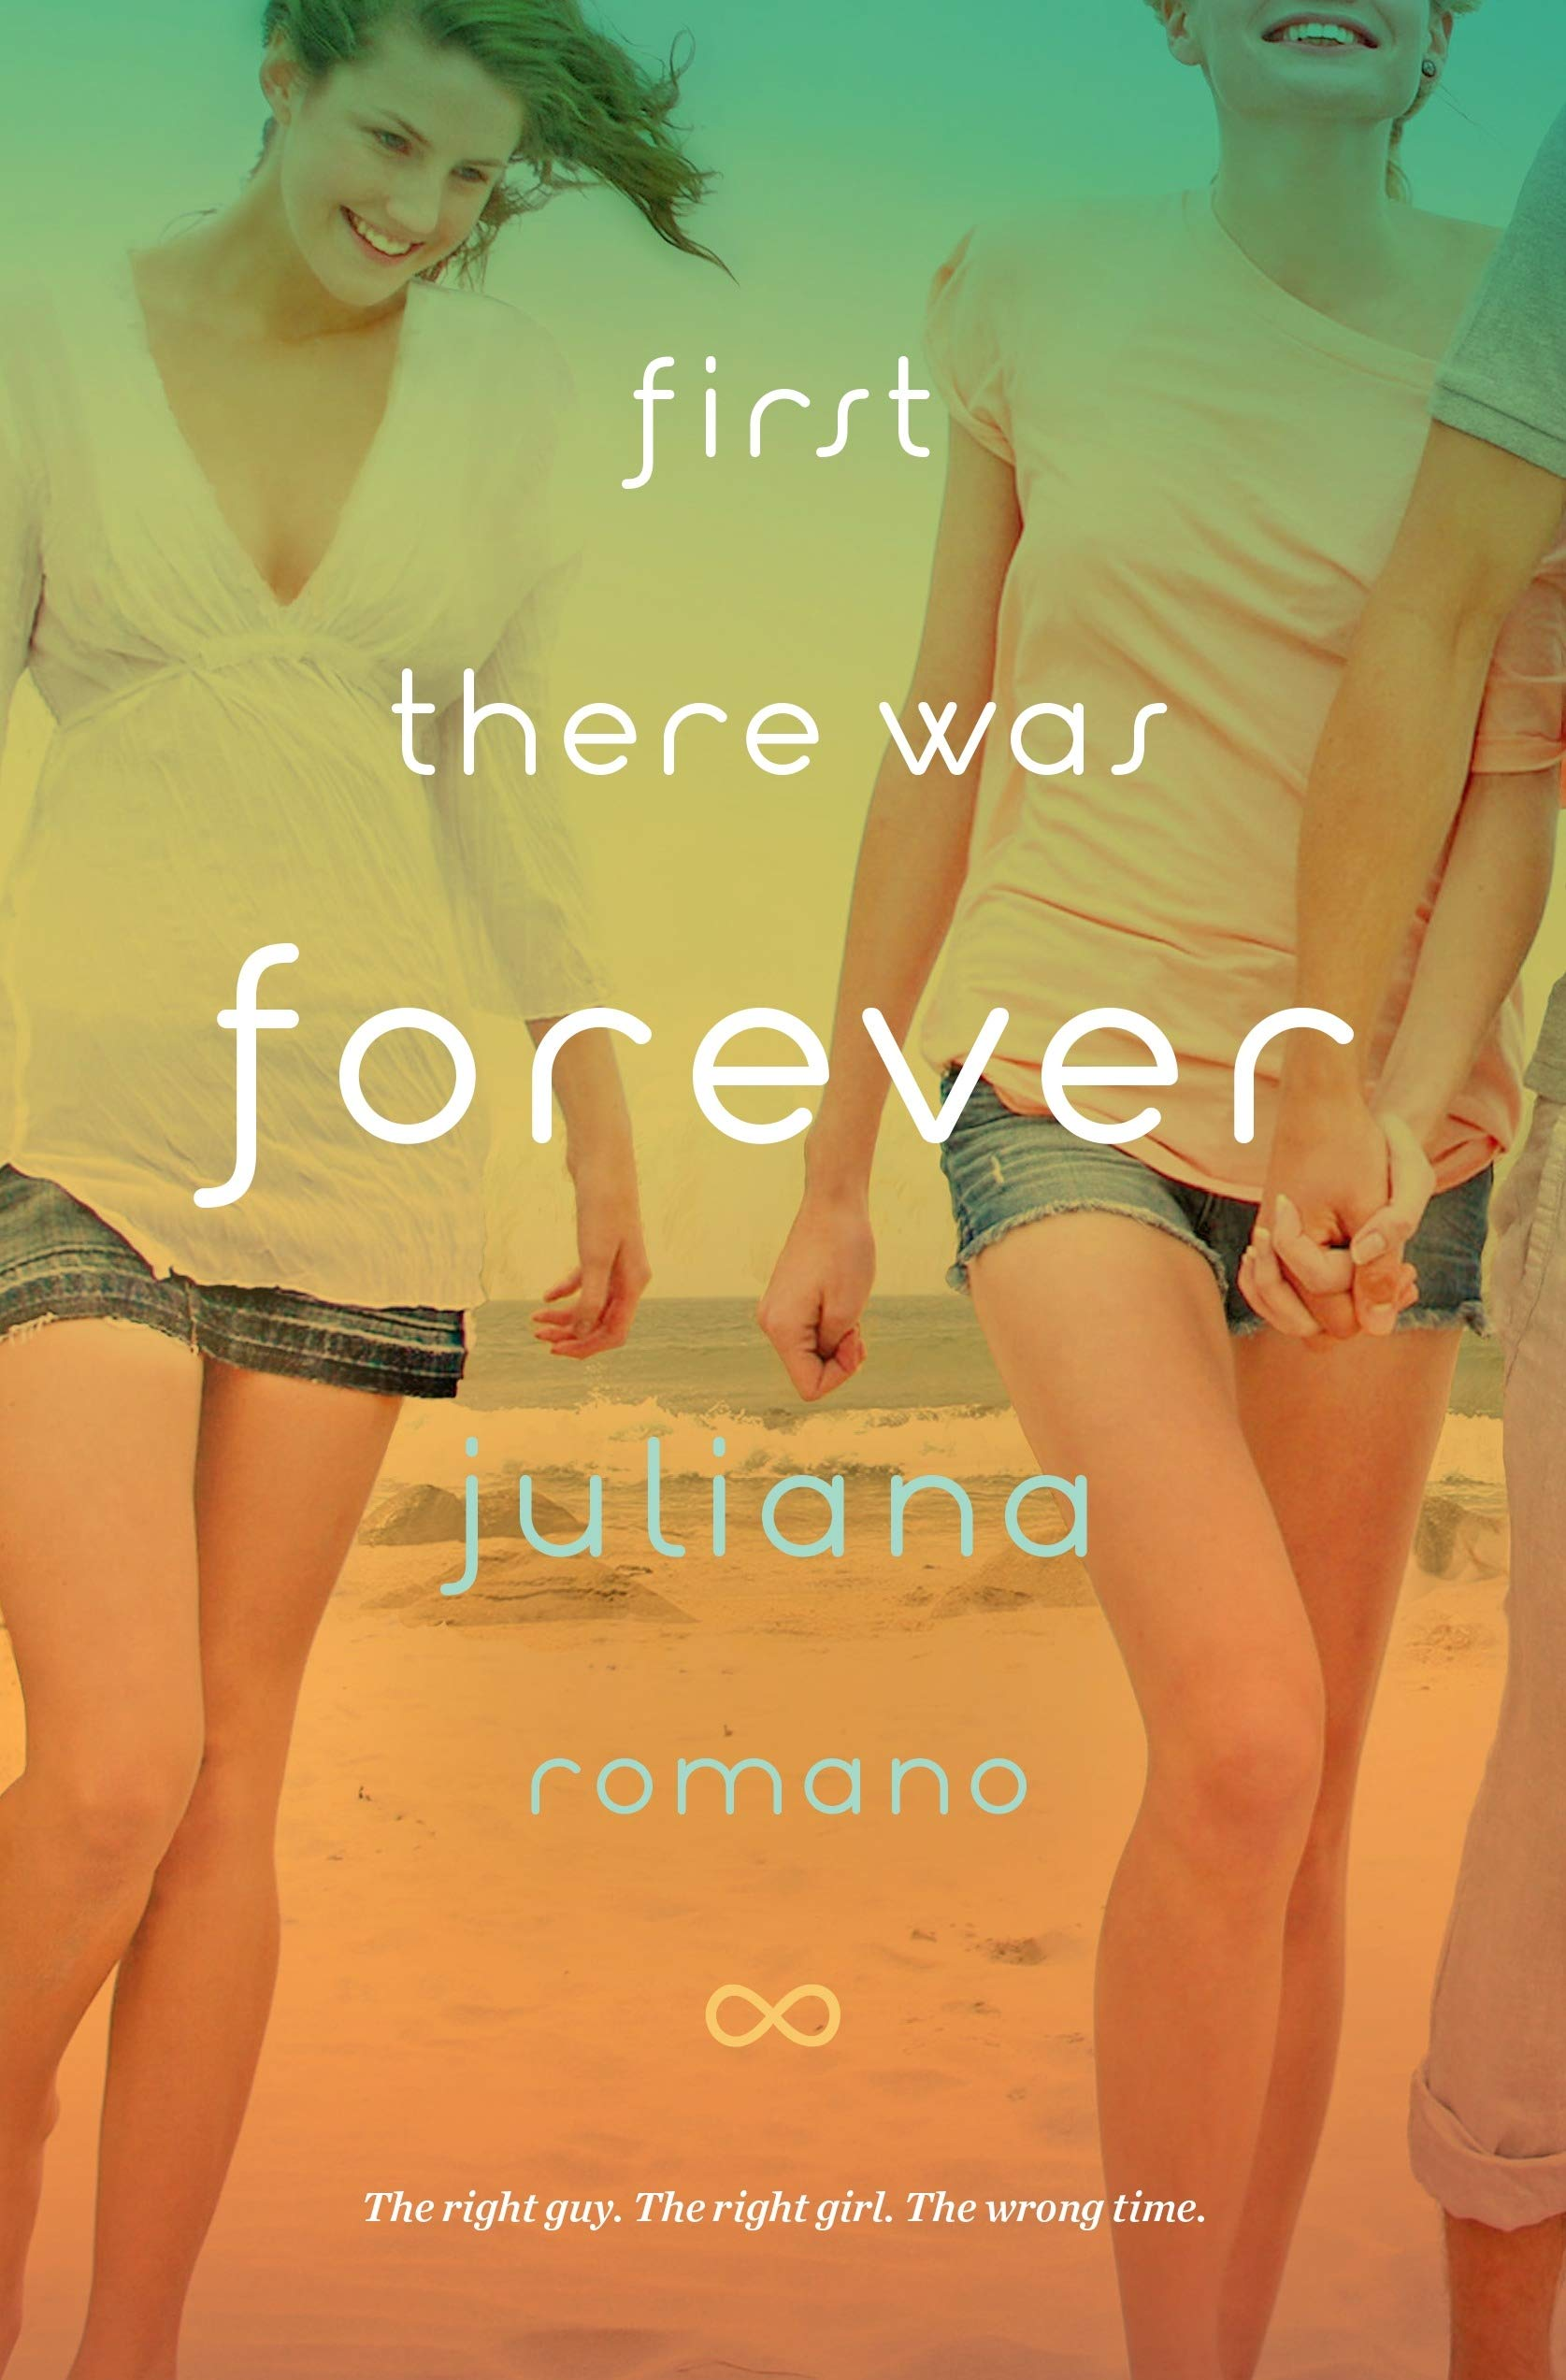 "- ""An emotionally rich coming of age love story."" - Kirkus Reviews https://www.kirkusreviews.com/book-reviews/juliana-romano/first-there-was-forever/A Publishers Weekly Starred Review ** https://www.publishersweekly.com/978-0-8037-4168-3Los Angeles Review of Books: ""When Best Friends Fall Apart"" https://lareviewofbooks.org/article/when-best-friends-fall-apart/Penguin Author Profile: https://www.penguinrandomhouse.com/authors/237707/juliana-romanoBUY NOW https://www.amazon.com/dp/B00KWG5RMI/ref=dp-kindle-redirect?_encoding=UTF8&btkr=1"